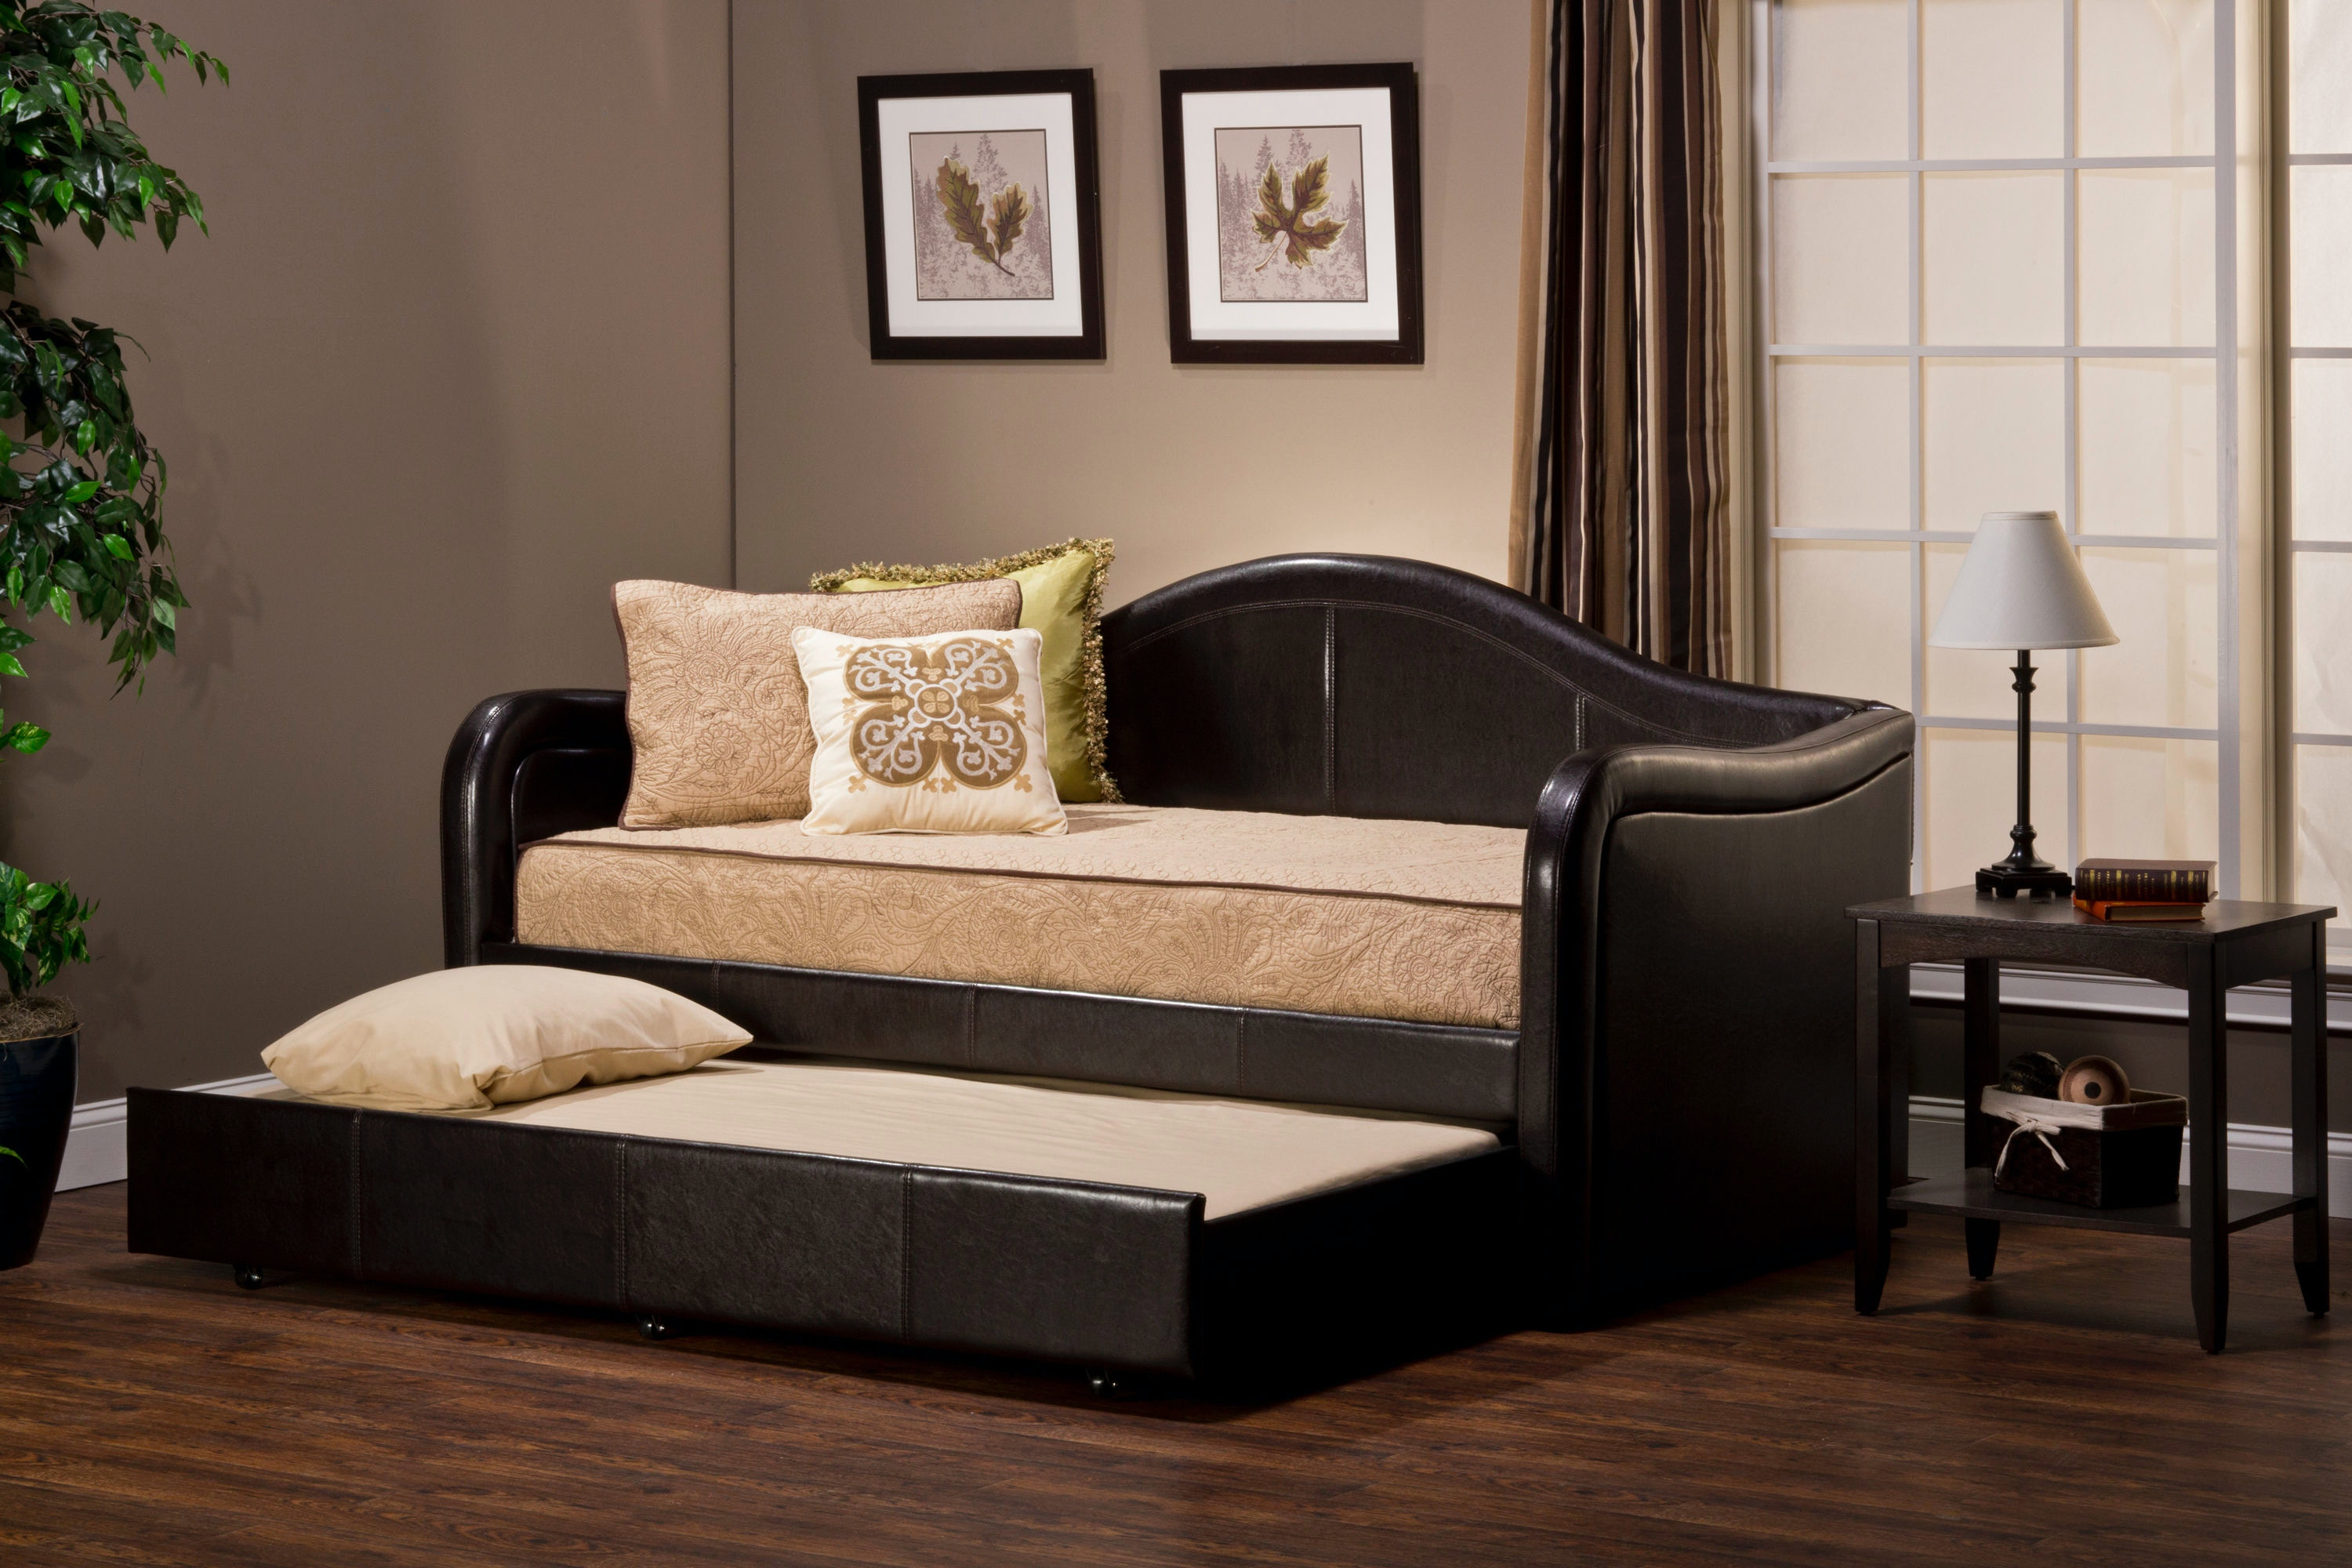 Hillsdale Furniture Bedroom Brenton Daybed 1719DB